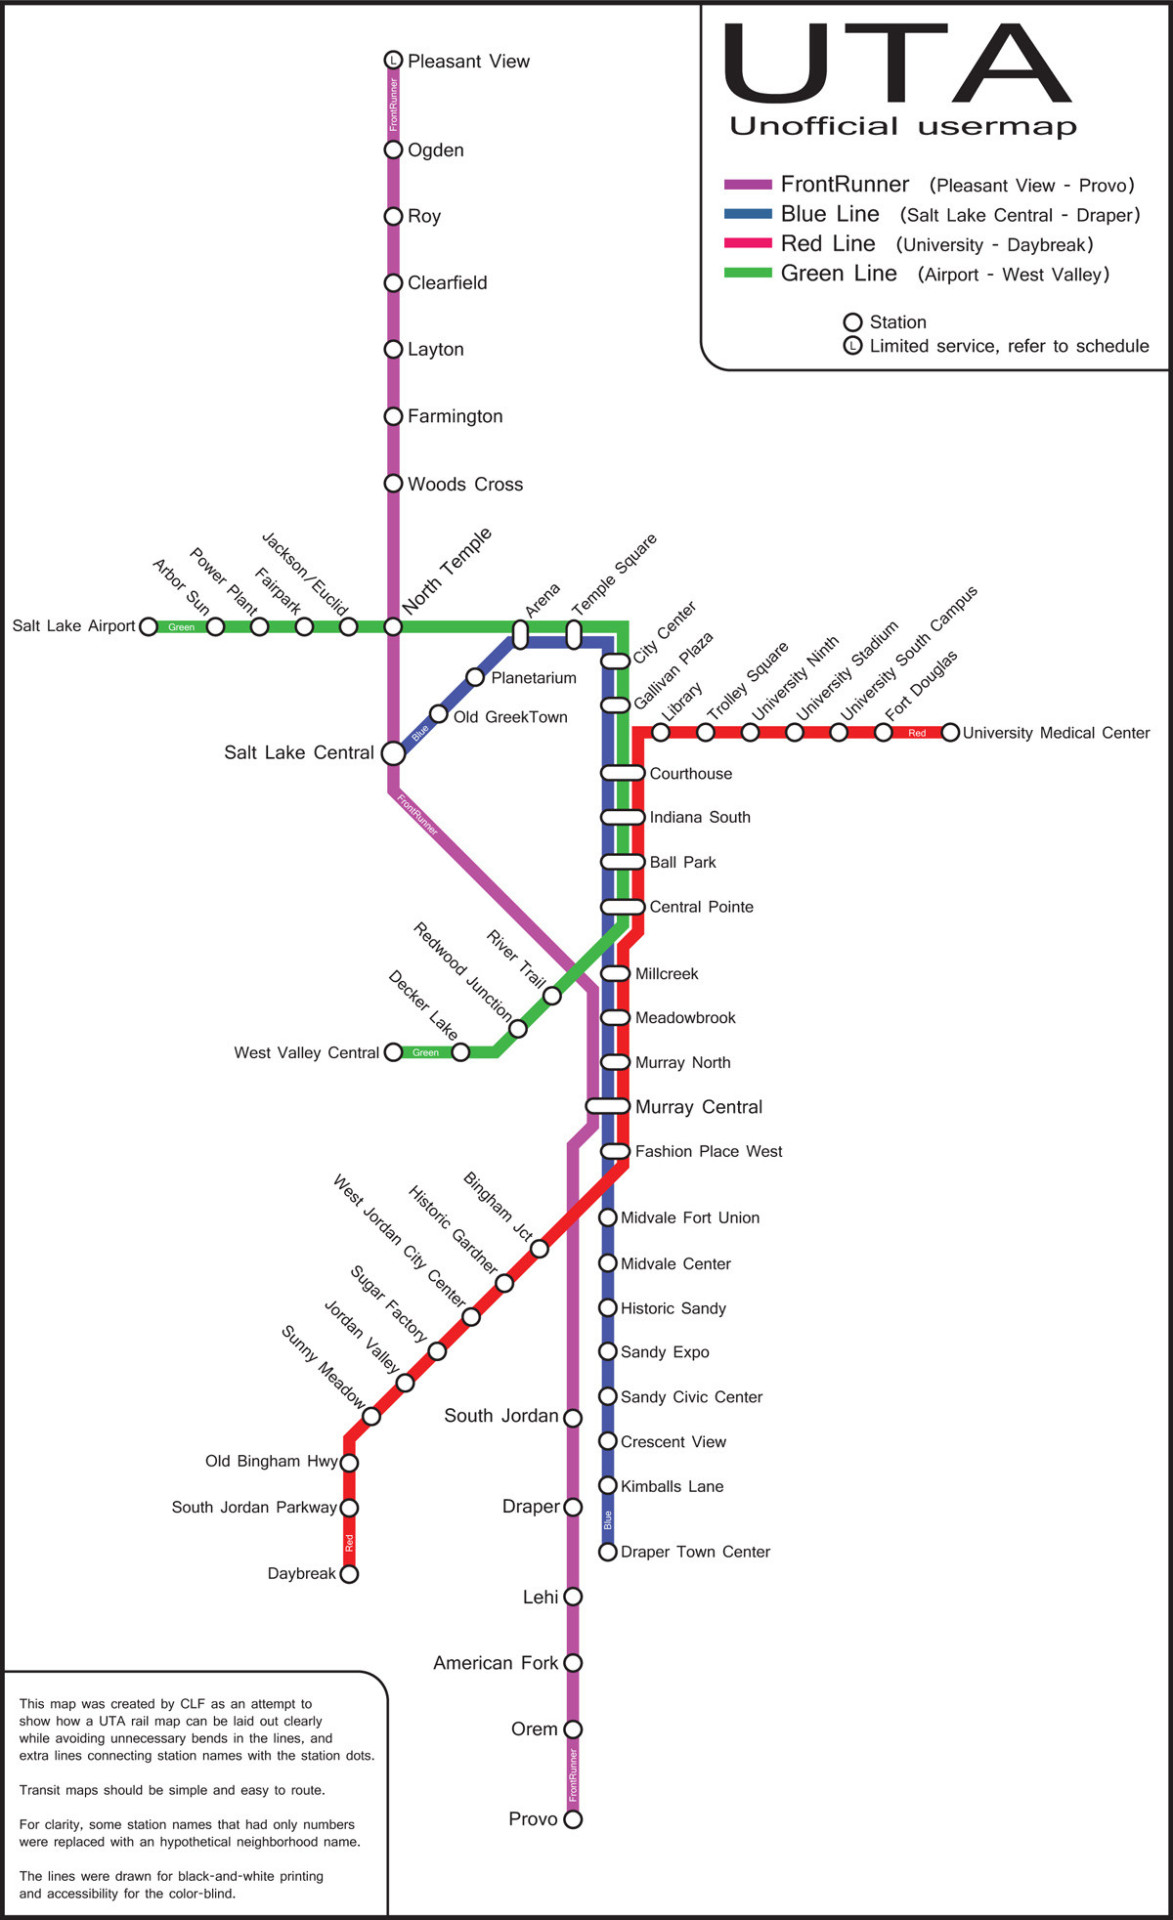 "Unofficial Map: UTA TRAX and Frontrunner — a plea for good transit map design Found on Twitter via user @f40phr231 Following on from yesterday's post, here's an unofficial map of Salt Lake City's TRAX and FrontRunner rail system. I've feautured another unofficial map of this system previously (December 2012, 3.5 stars), but this one is interesting because it contains a message seemingly aimed at the UTA, almost pleading for better map design. It reads: This map was created by CLF as an attempt to show how a UTA rail map can be laid out clearly while avoiding unnecessary bends in the lines, and extra lines connecting station names with the station dots. Transit maps should be simple and easy to route. For clarity, some station names that had only only numbers were replaced with an hypothetical neighborhood name. The lines were drawn for black-and-white printing and accessibility for the color-blind. In the grand scheme of things, this map is really pretty standard — there's nothing truly memorable about it, nor is the design particularly outstanding — yet it's still streets ahead of the current official map. The extra space afforded to downtown SLC works wonders for clarity and usability — gone are the ugly lines pointing to stations from awkwardly placed labels. The labelling could still use some work — different sizes of type are used, and the labels on the south-western leg of the Red Line could easily be set horizontally instead of at an angle. The tiny labelling of route names within their respective route lines is next to useless: another approach should be used to identify routes for color-blind users. Finally, a tweet from the UTA in response to this map seems to suggest that things could get better in the future — here's hoping! P.S. Does anyone know who or what ""CLF"" is?"